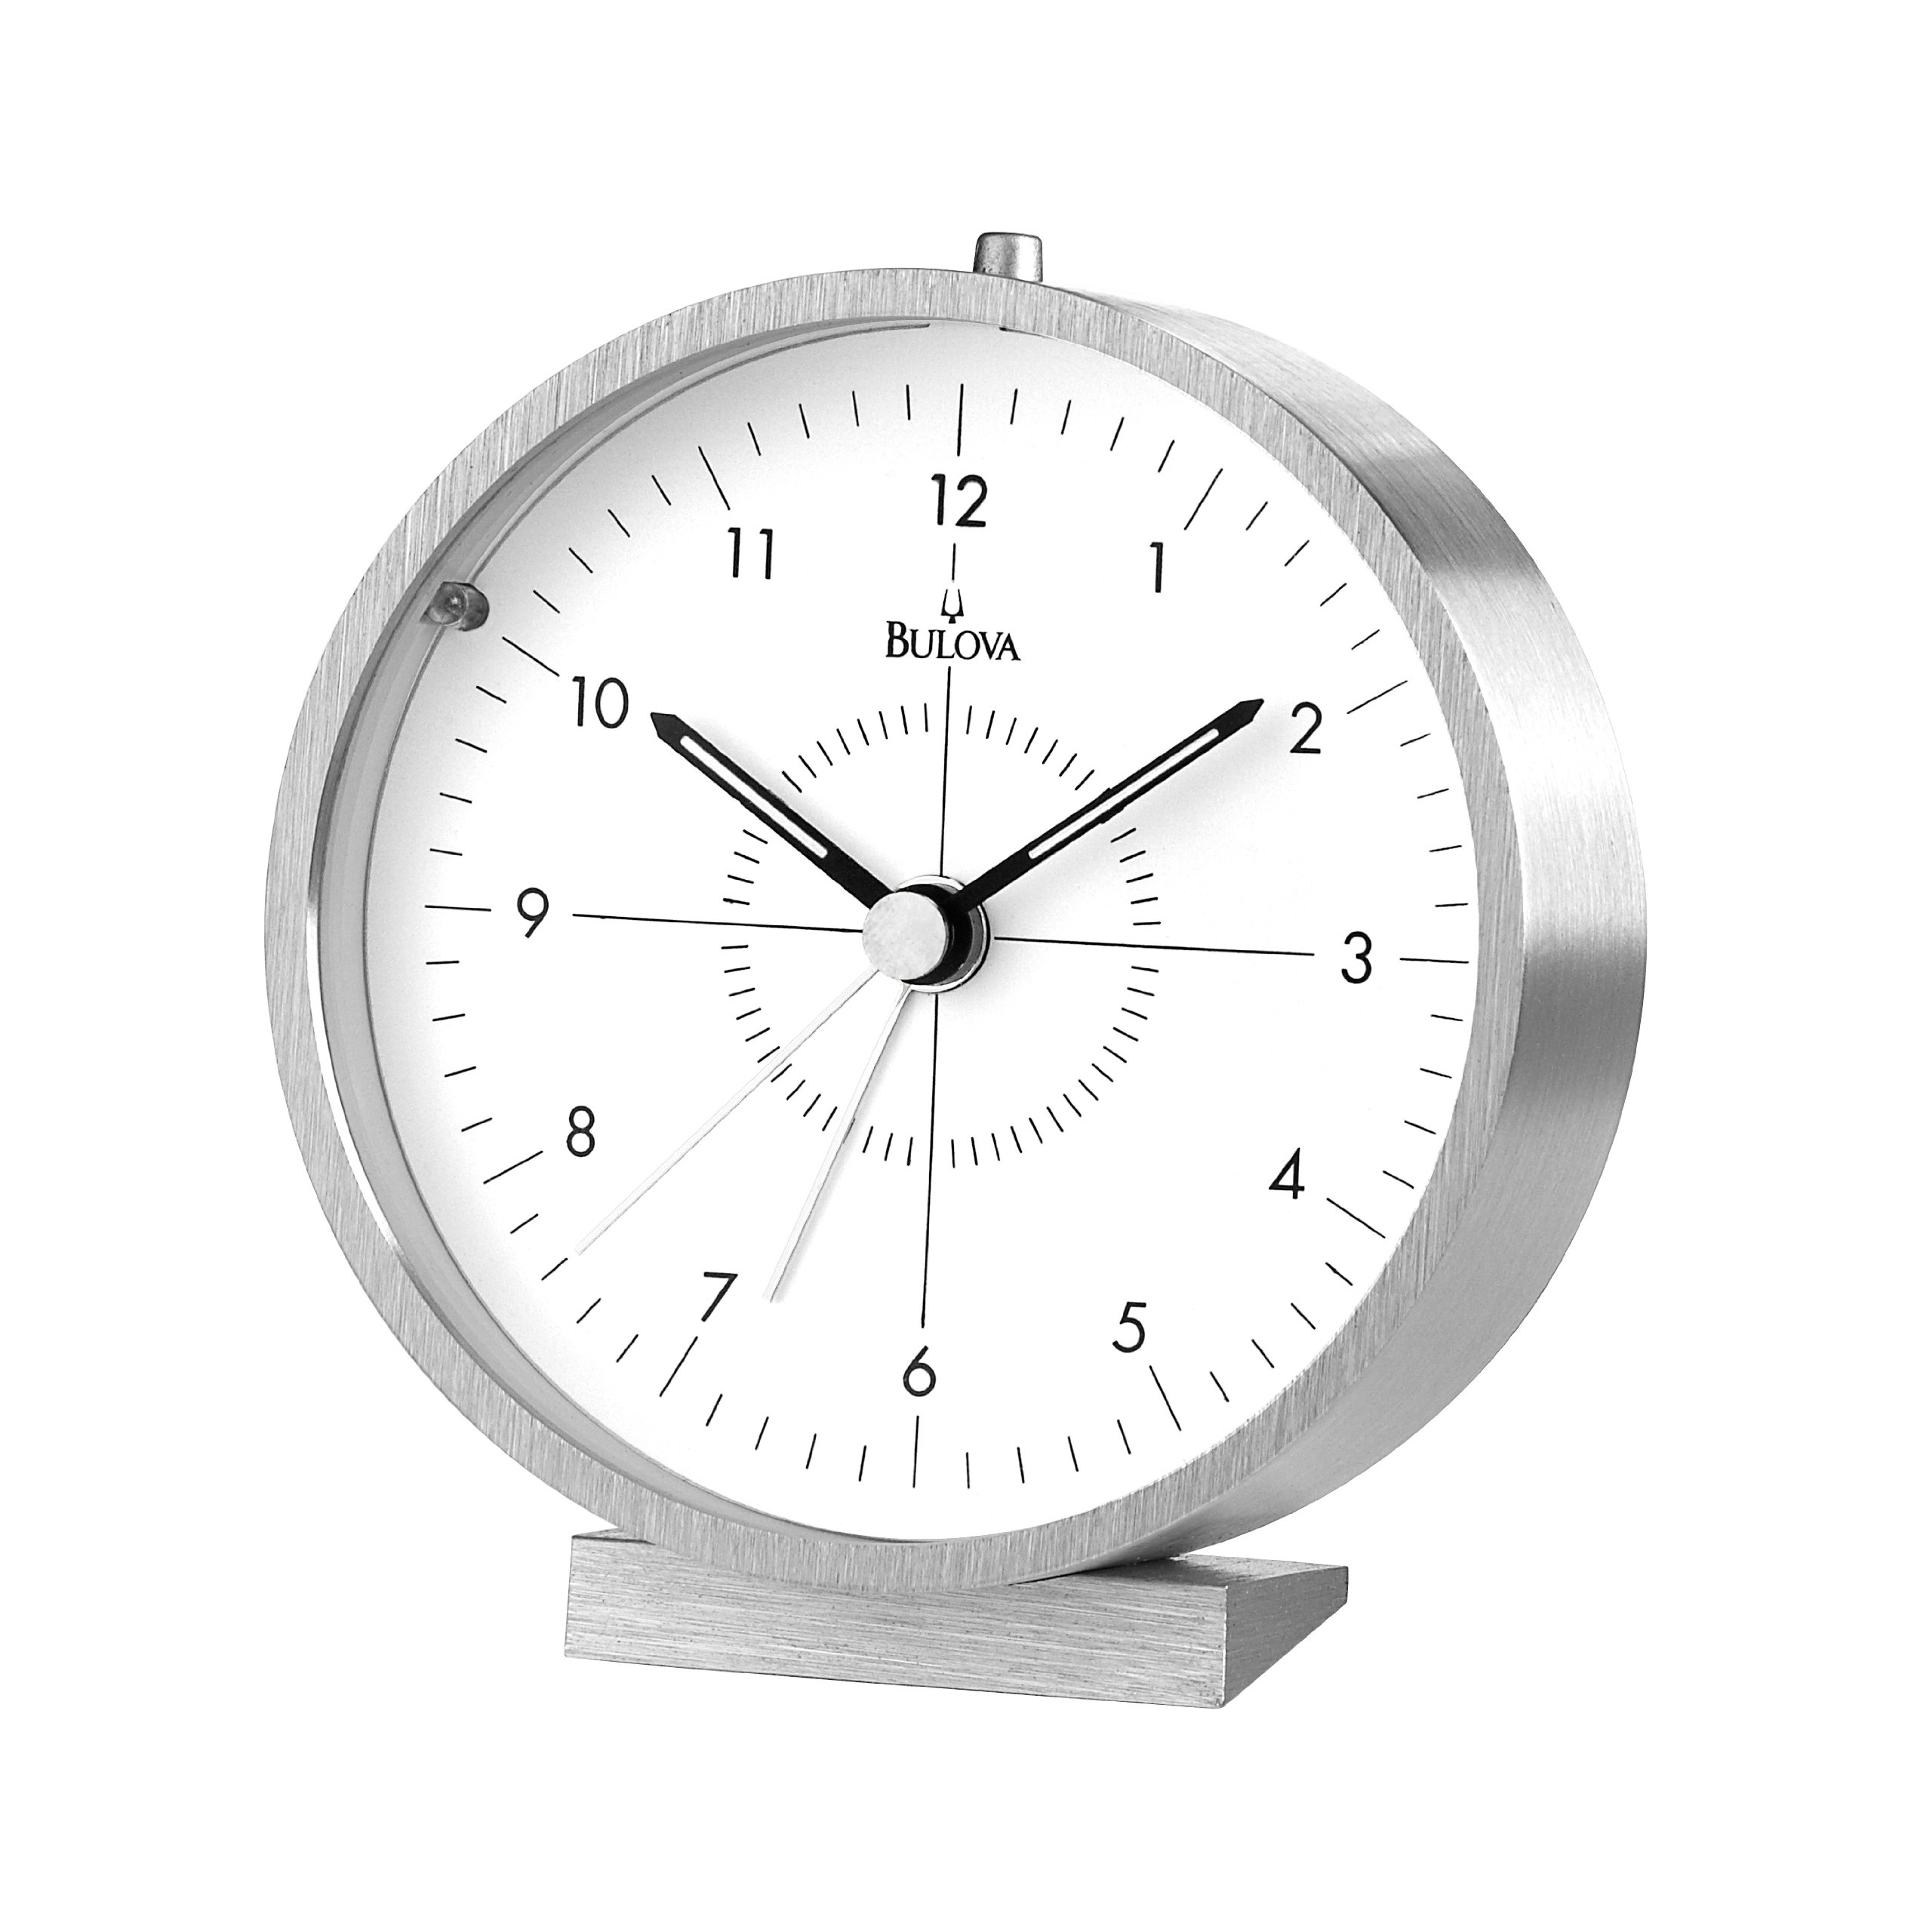 Bulova B6844 Flair Alarm Clock Silver - Aluminum Case And Base Brushed Finish Luminous Hands - clocks, bedroom-decor, bedroom - 81y6hfCA8iL -